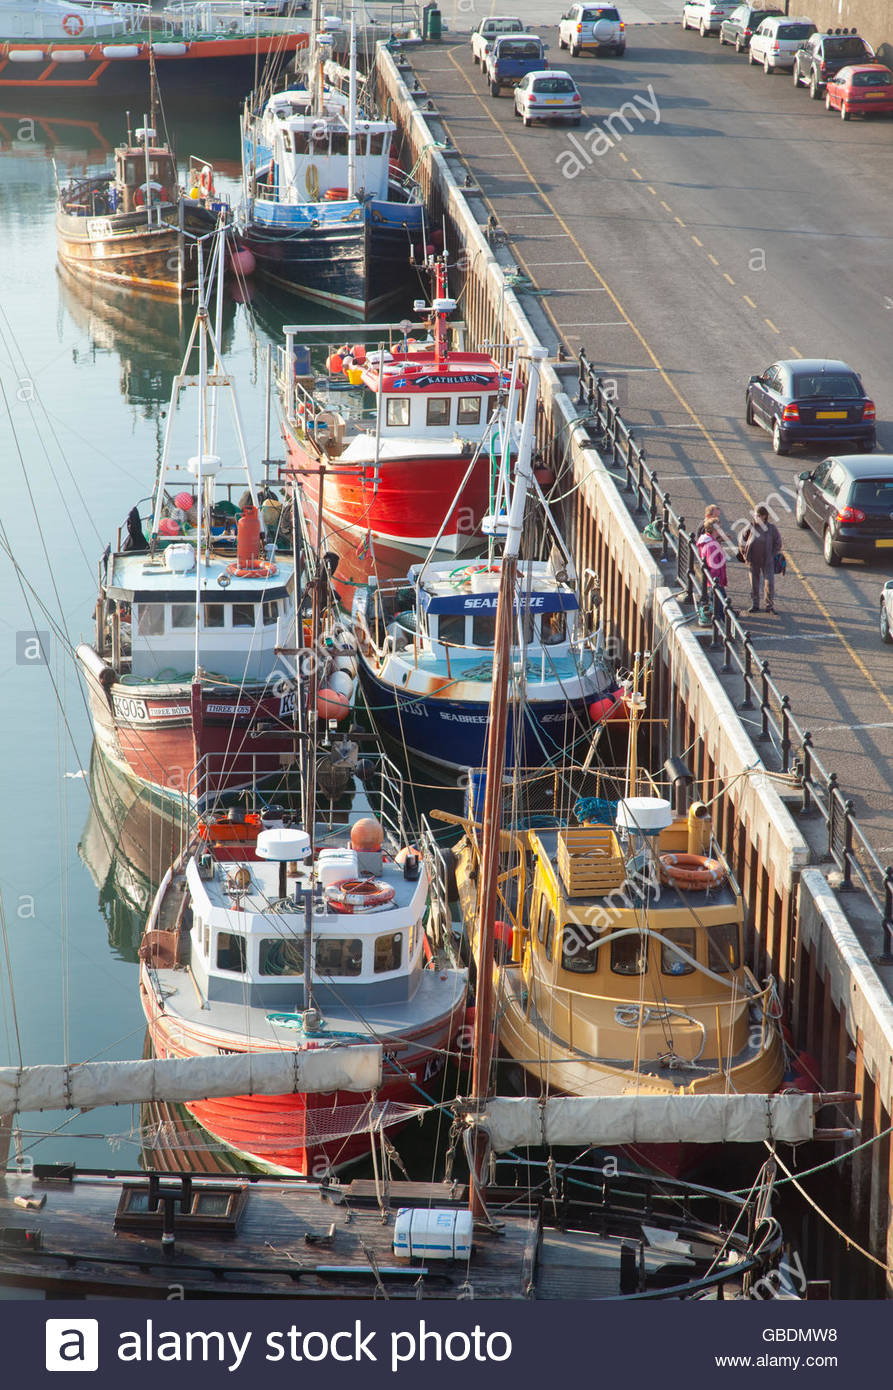 Fishing Boats moored in the harbour at Kirkwall, Mainland, Orkney, Scotland. - Stock Image